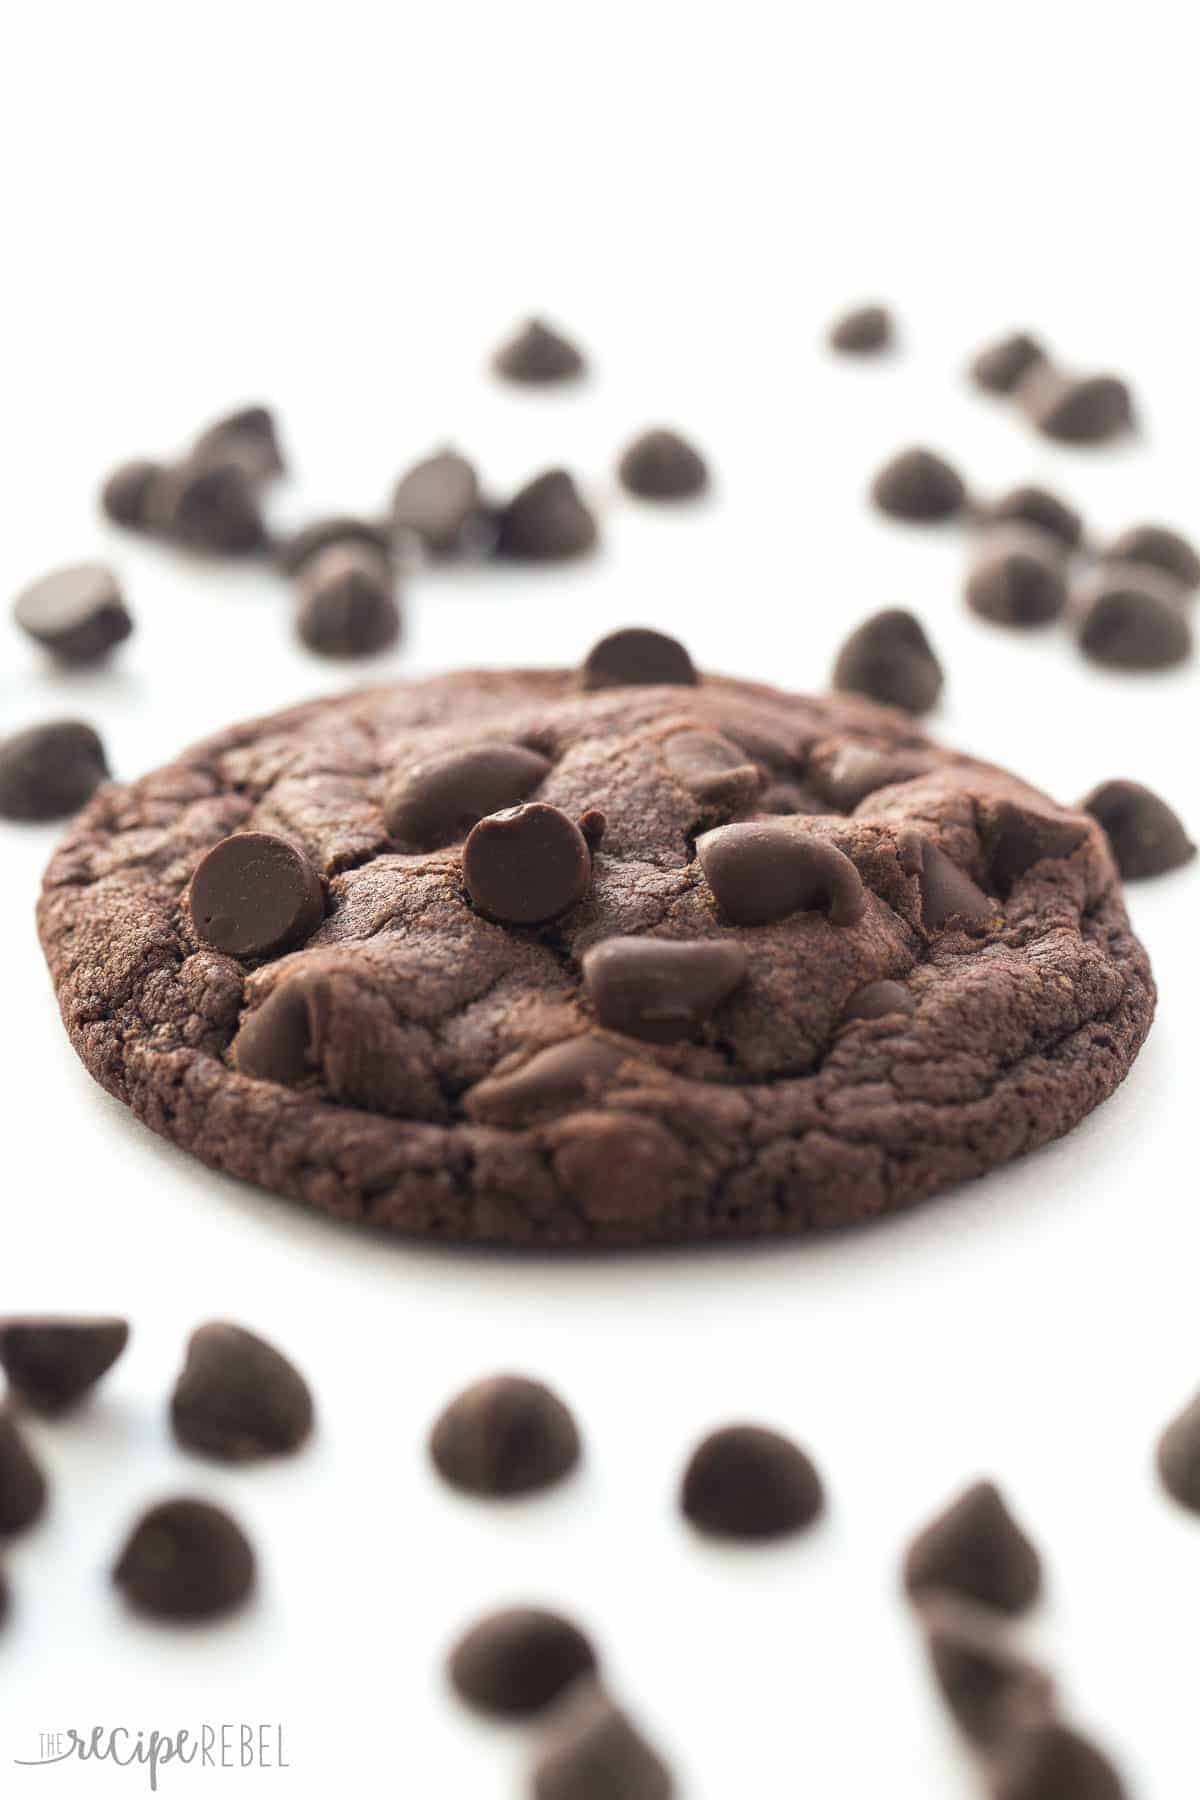 one double chocolate chip cookie up close on white background